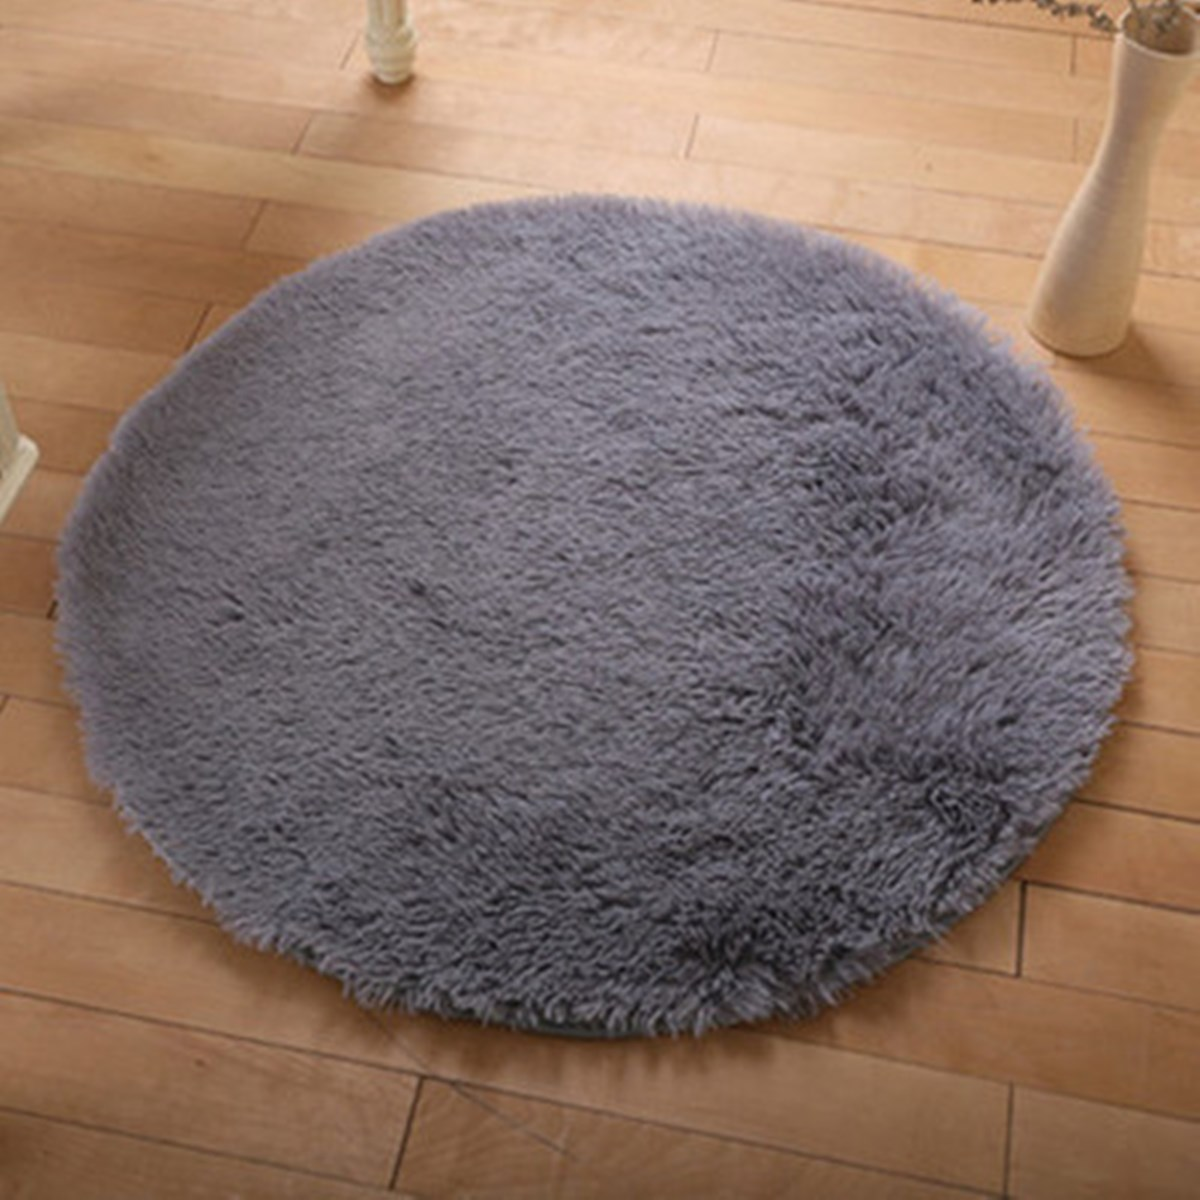 Round Rugs For Living Room Compare Prices On Shaggy Round Rugs Online Shopping Buy Low Price